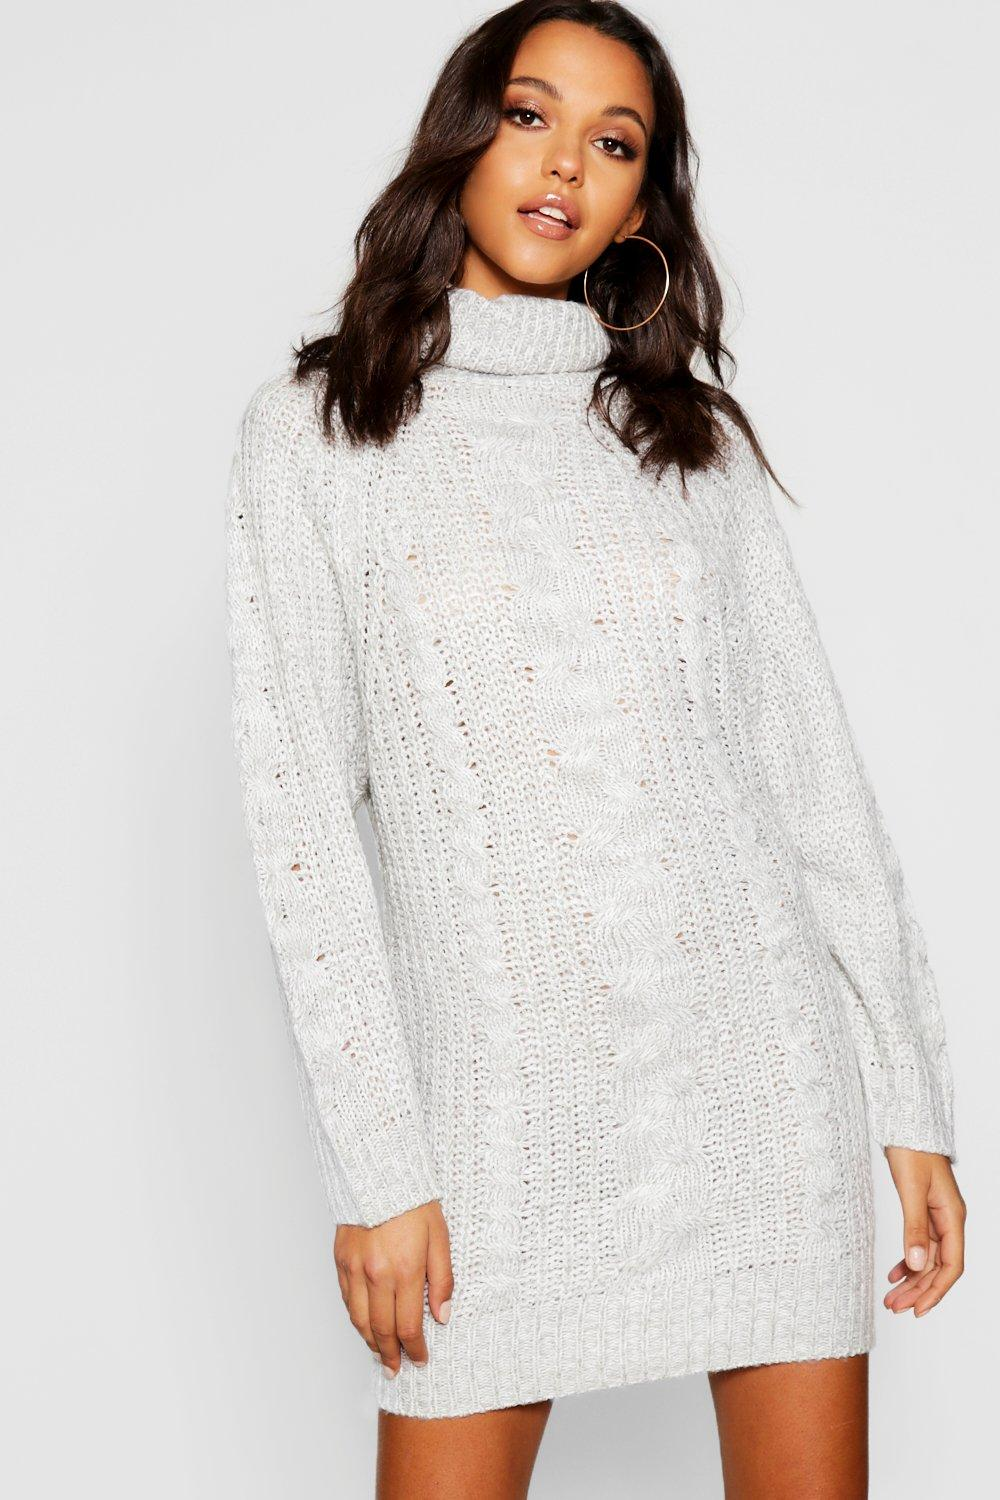 0a1b986216fe Womens Cable Knit Roll Neck Jumper Dress. Hover to zoom